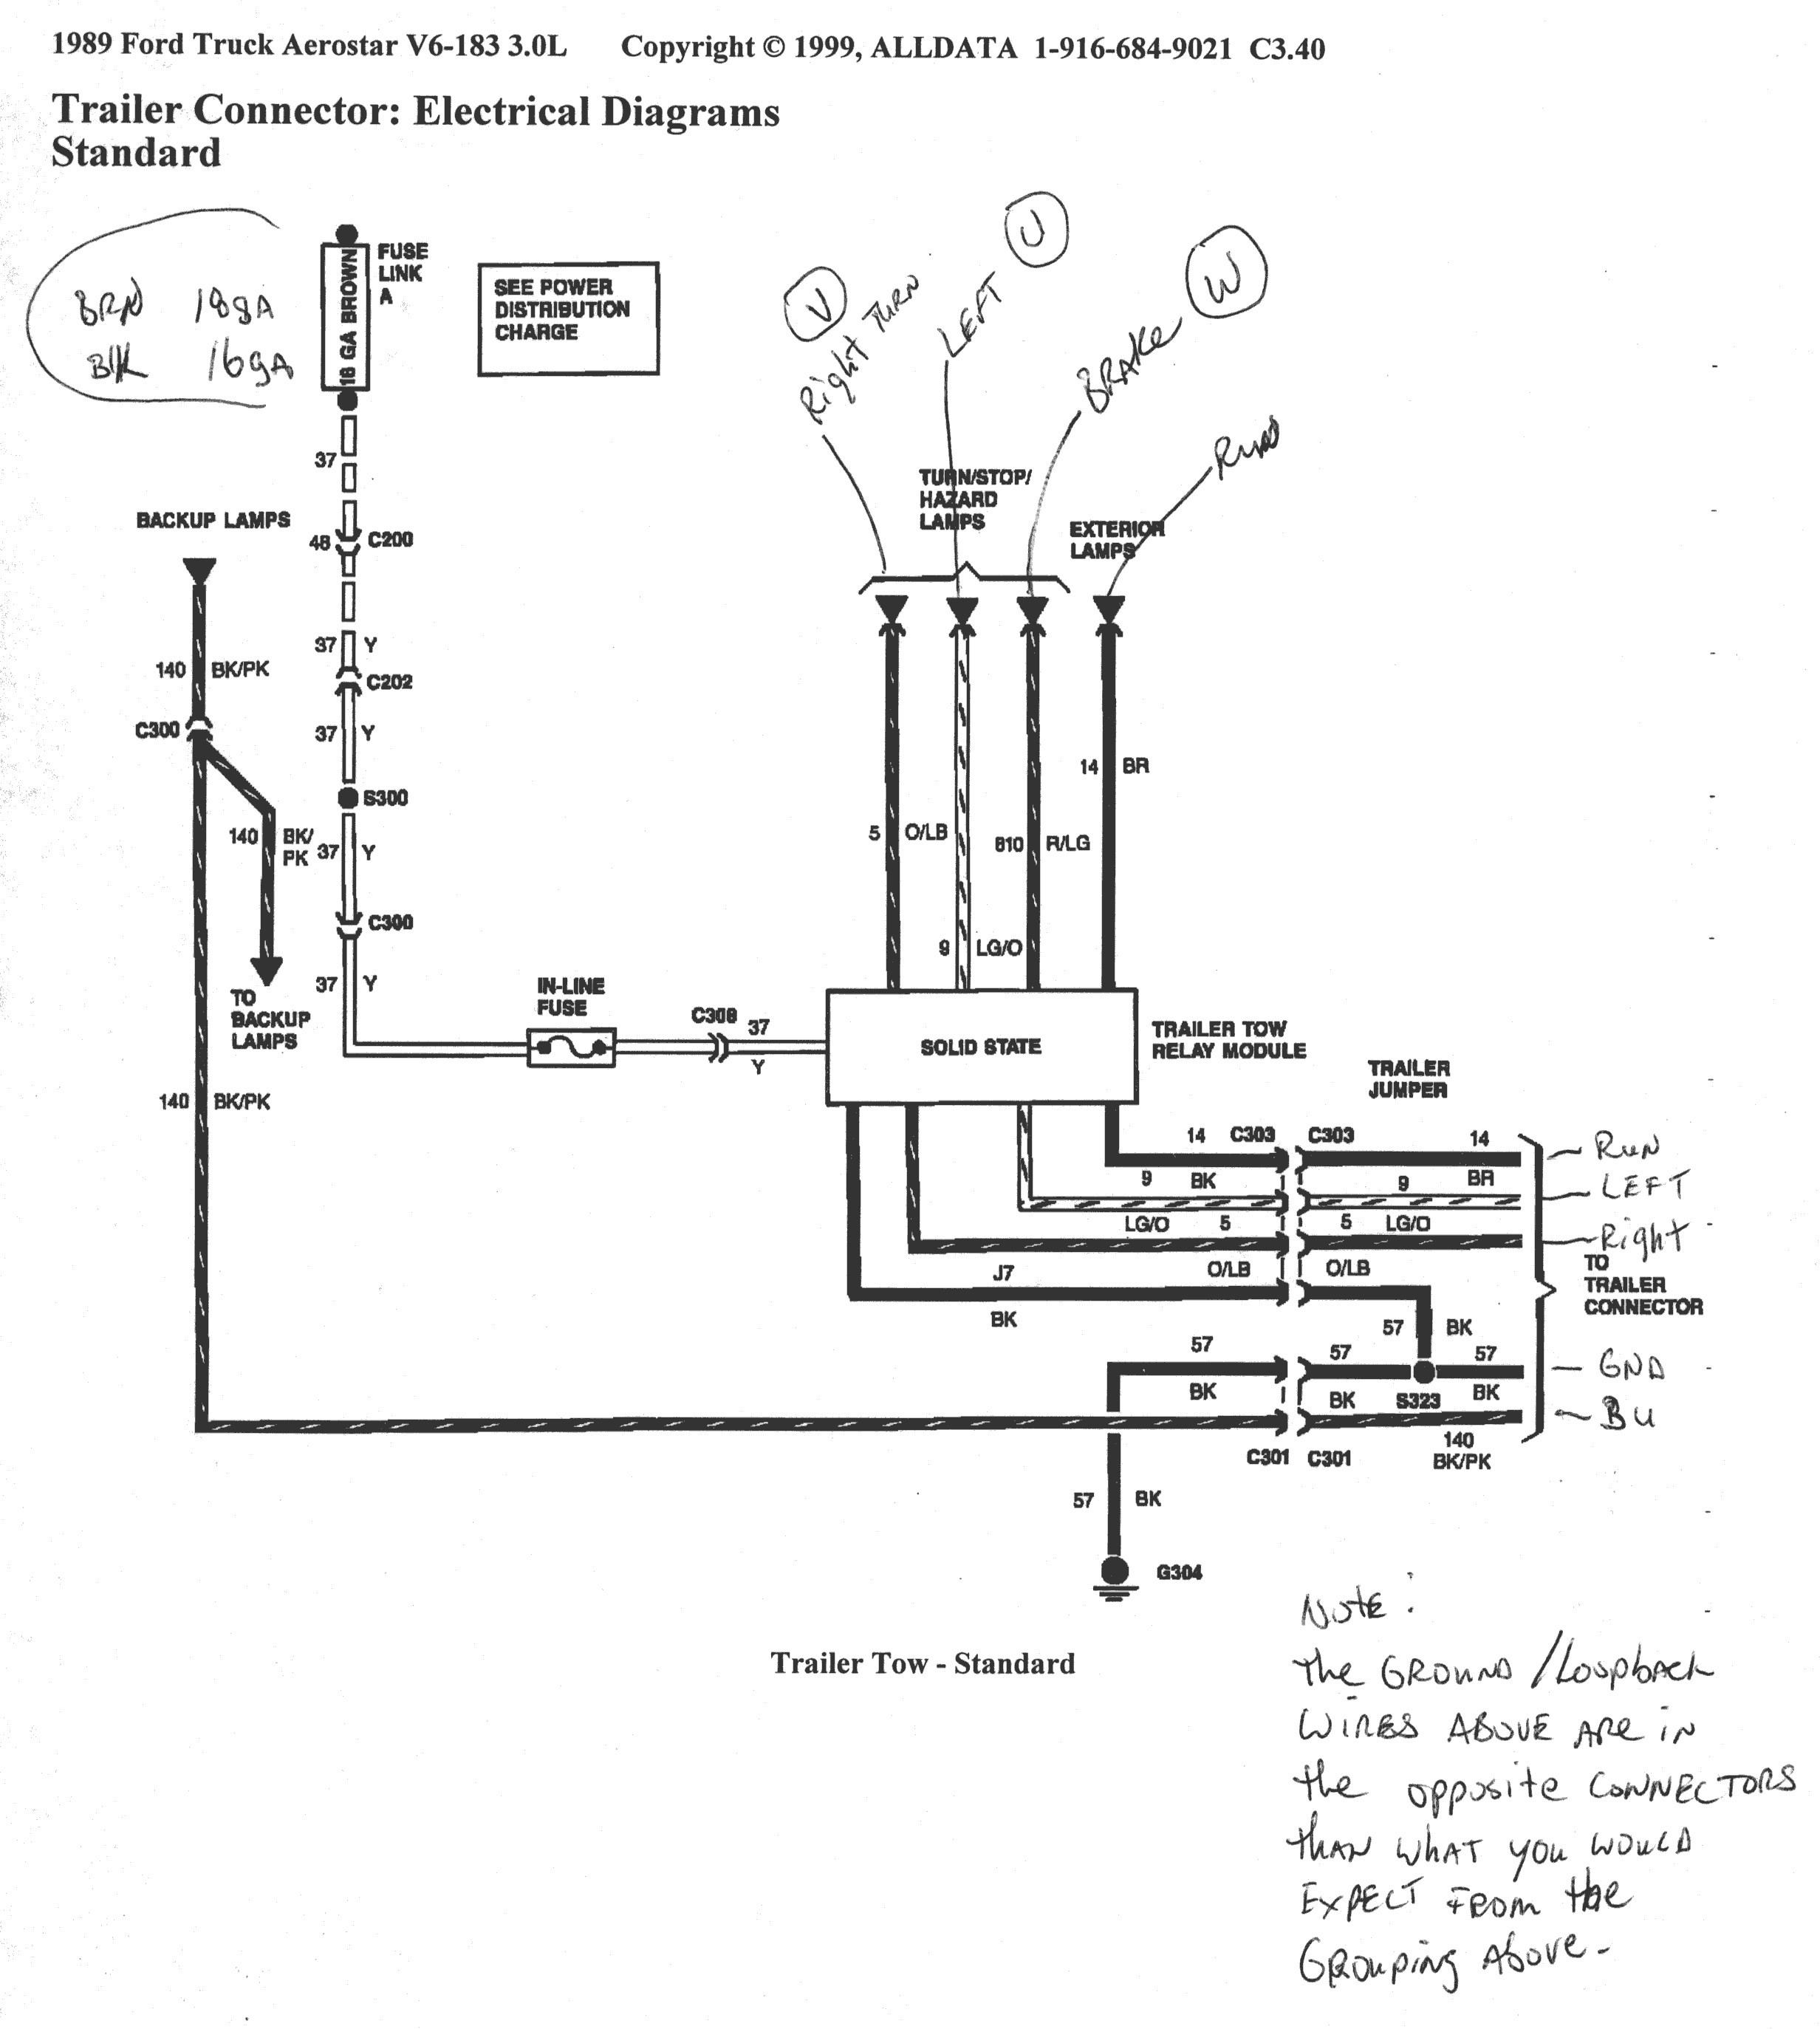 1980 chevy luv truck trailer wiring diagram 1994 chevy truck brake light wiring diagram | free wiring ... chevy tow truck light wiring